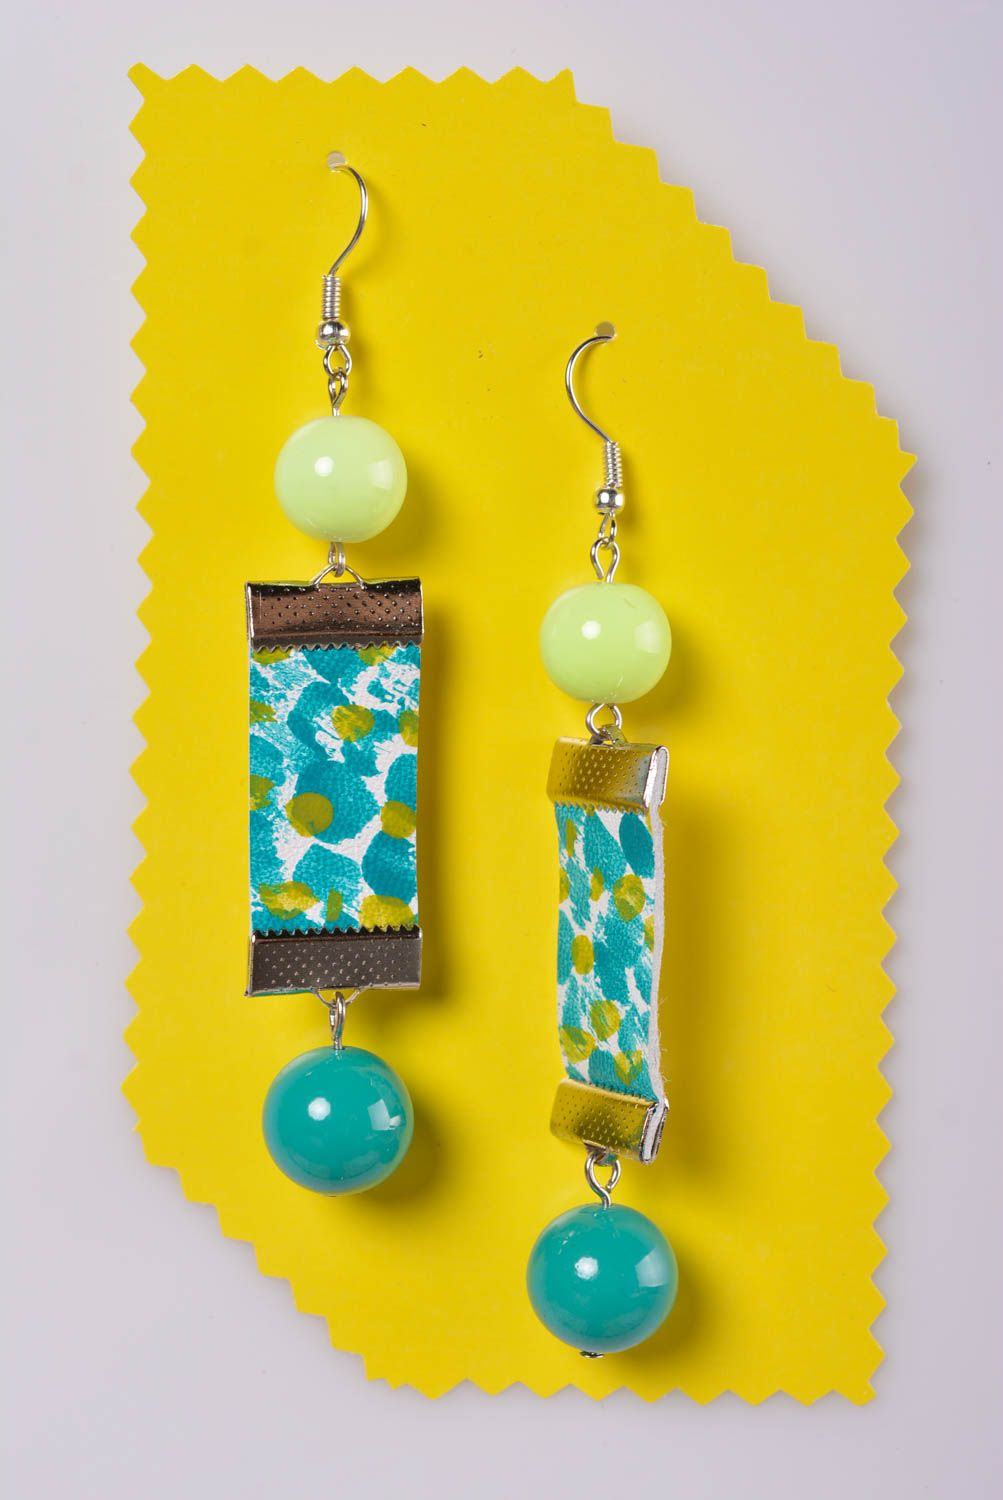 Stylish handmade leather earrings costume jewelry designs gifts for her photo 1